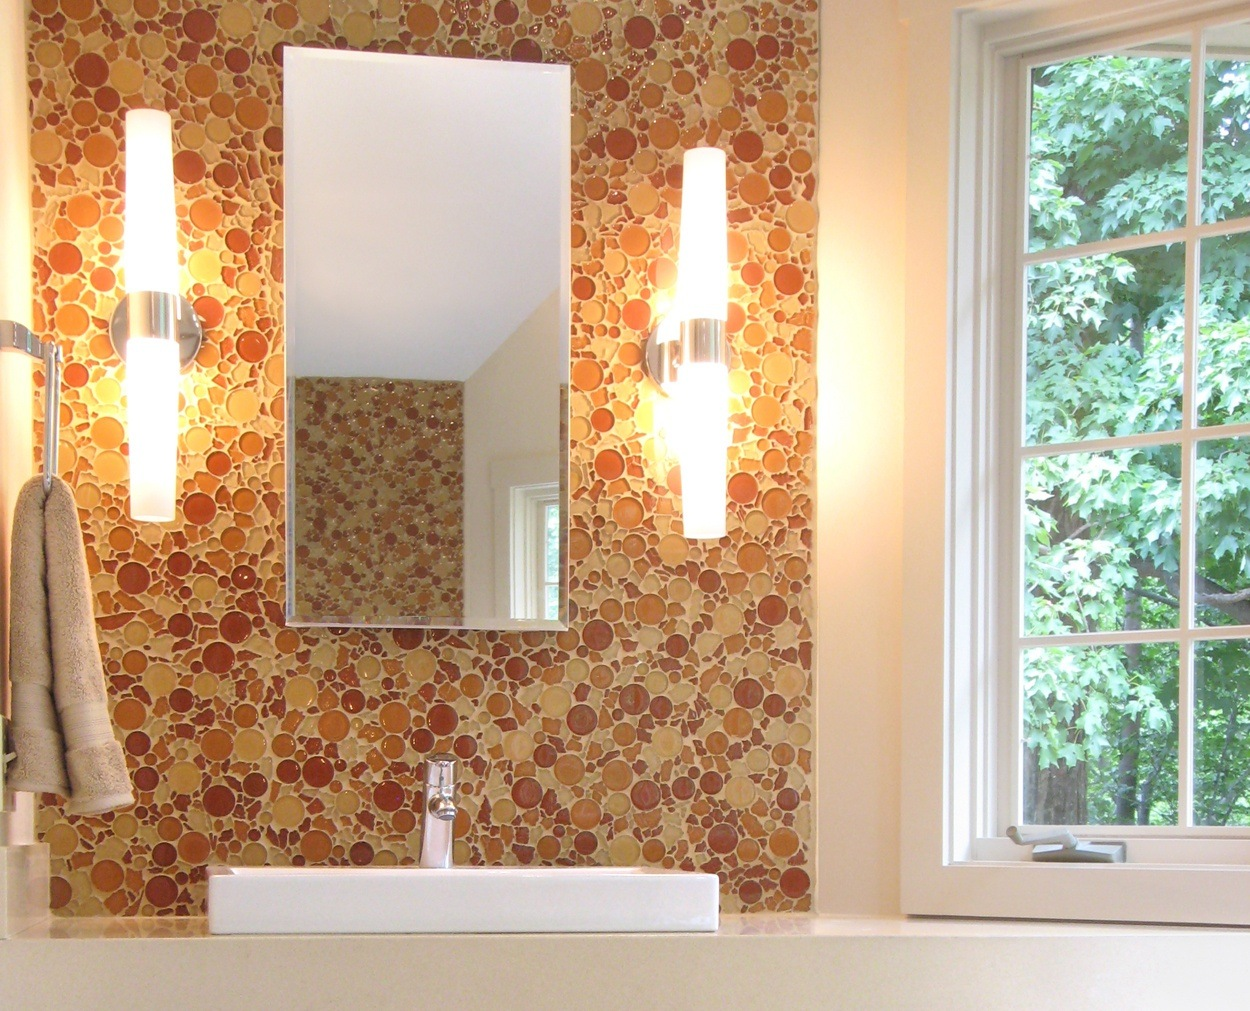 Circular glass tile and a cubed sink tops a custom vanity.